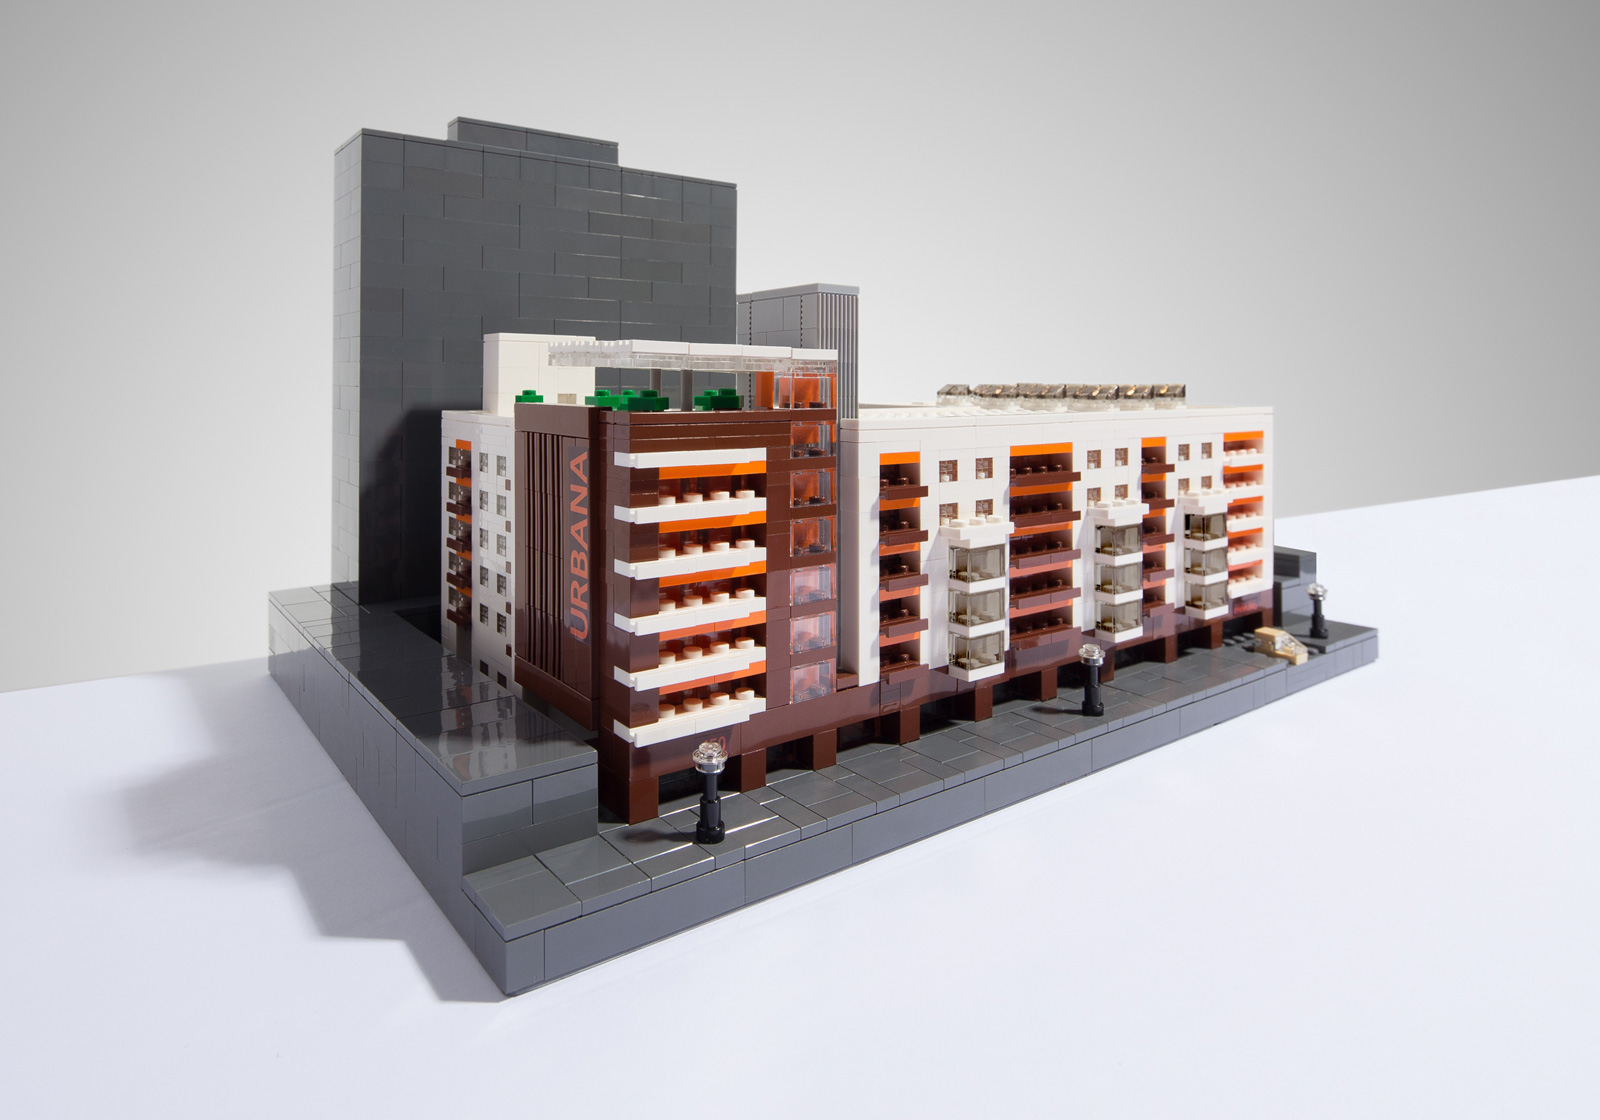 Urbana LEGO Model. (Photo by Carlo Sese.)